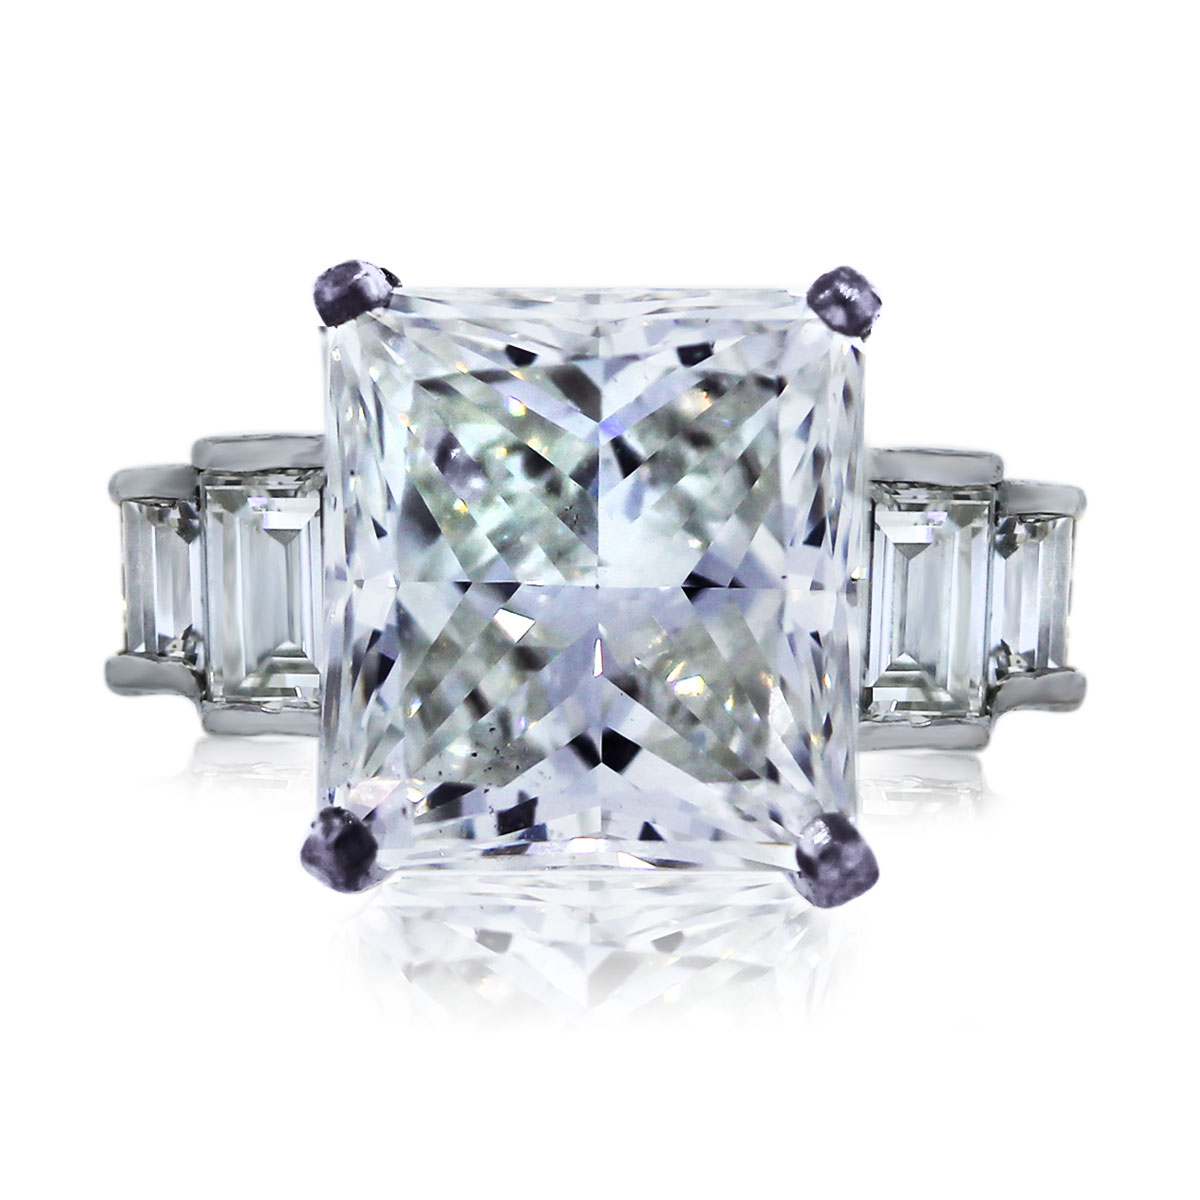 Check out this Stunning 6.05ct Diamond Engagement Ring!